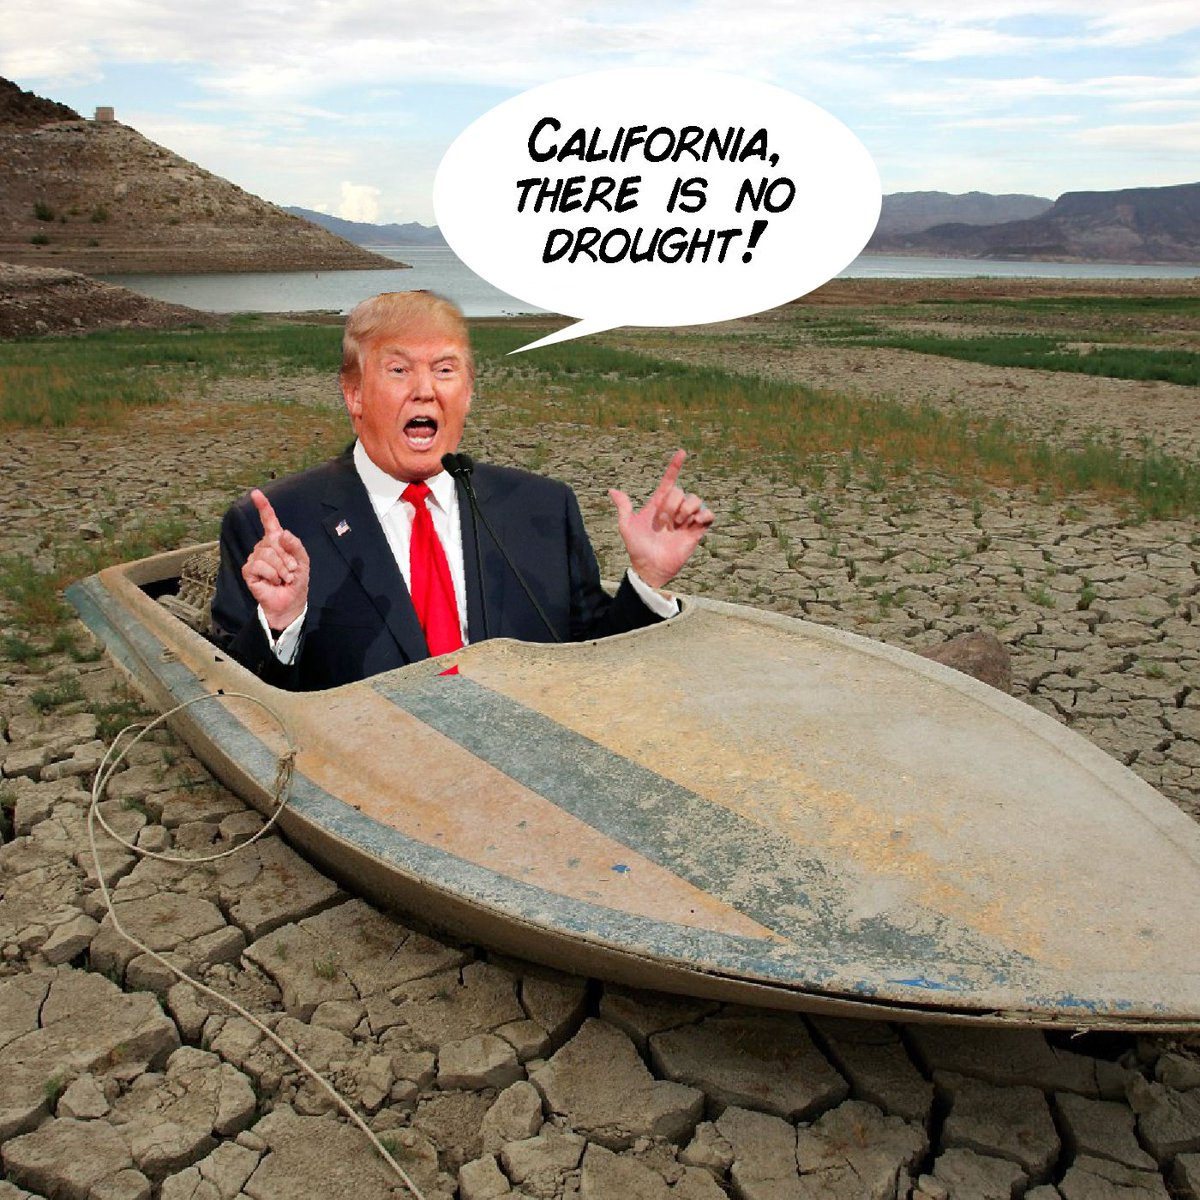 So, California, who are you going to believe, your dry lake beds or #ChickenTrump https://t.co/m6H2VTZ8eo